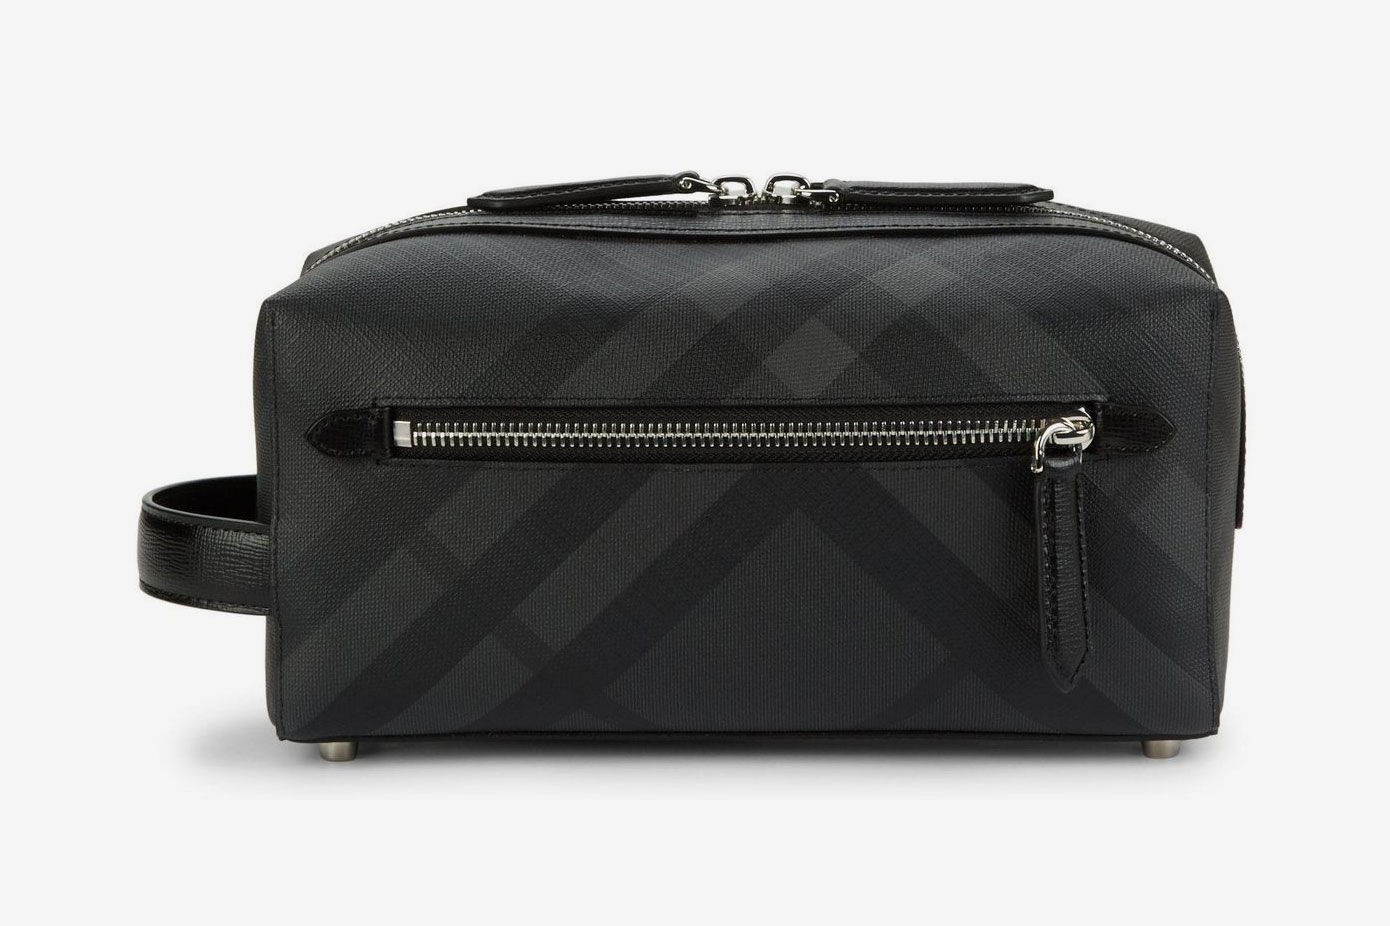 85245c9b4a4f Burberry Check Dopp Kit at Saks Fifth Avenue